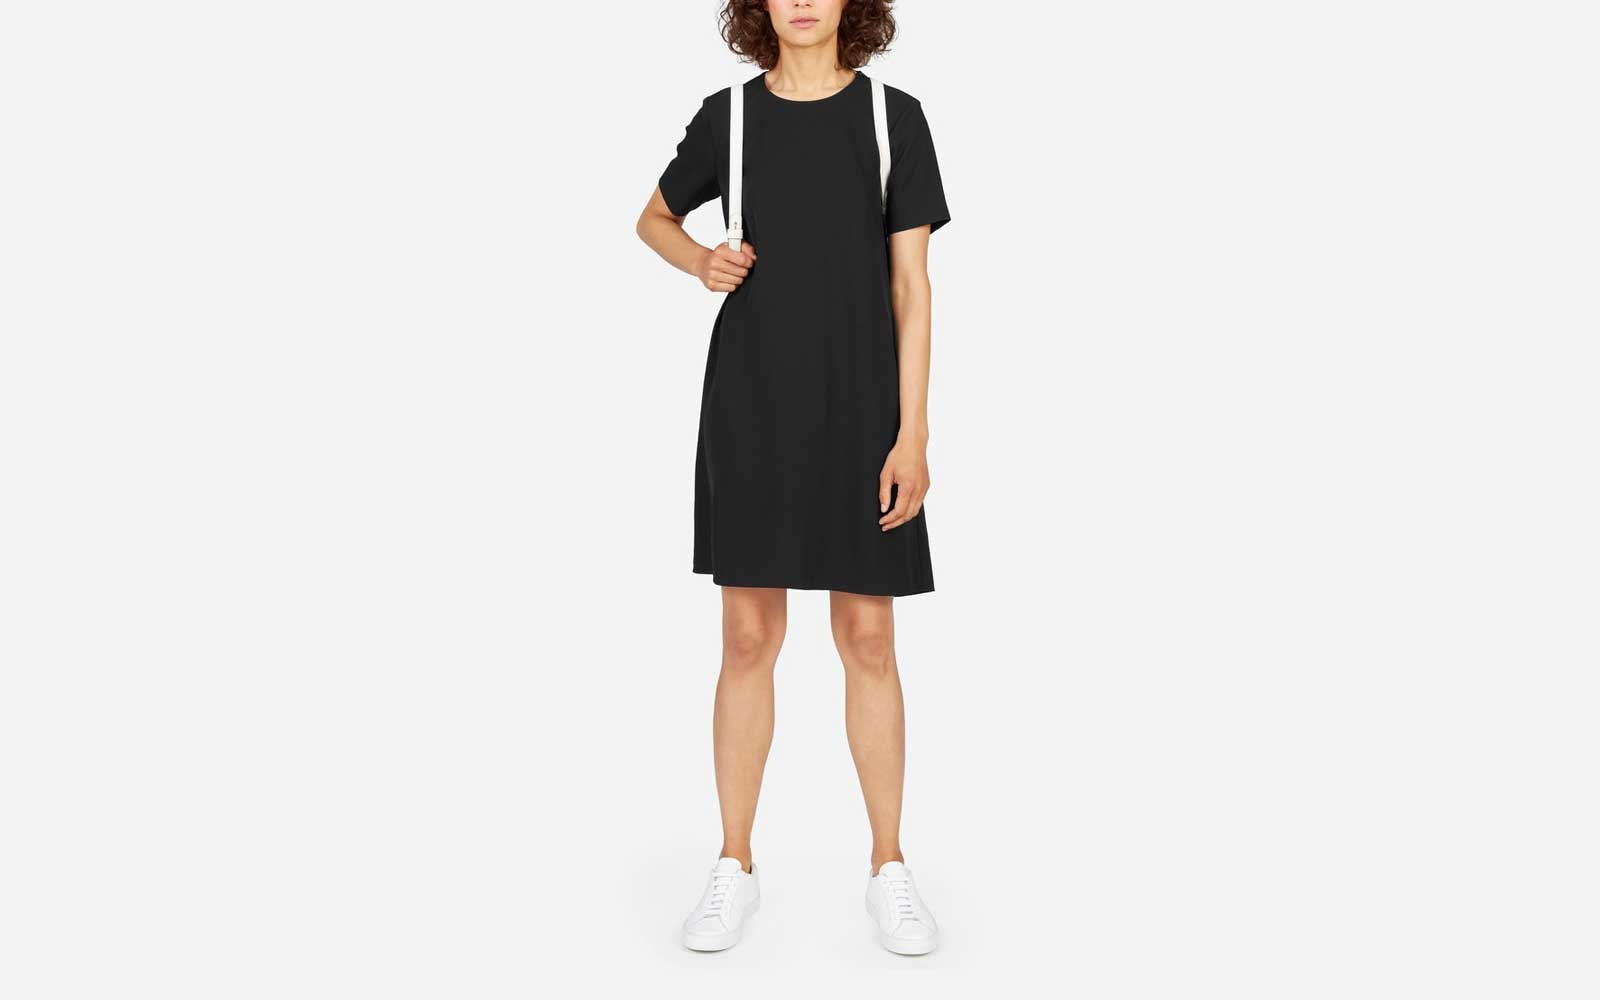 everlane travel dress